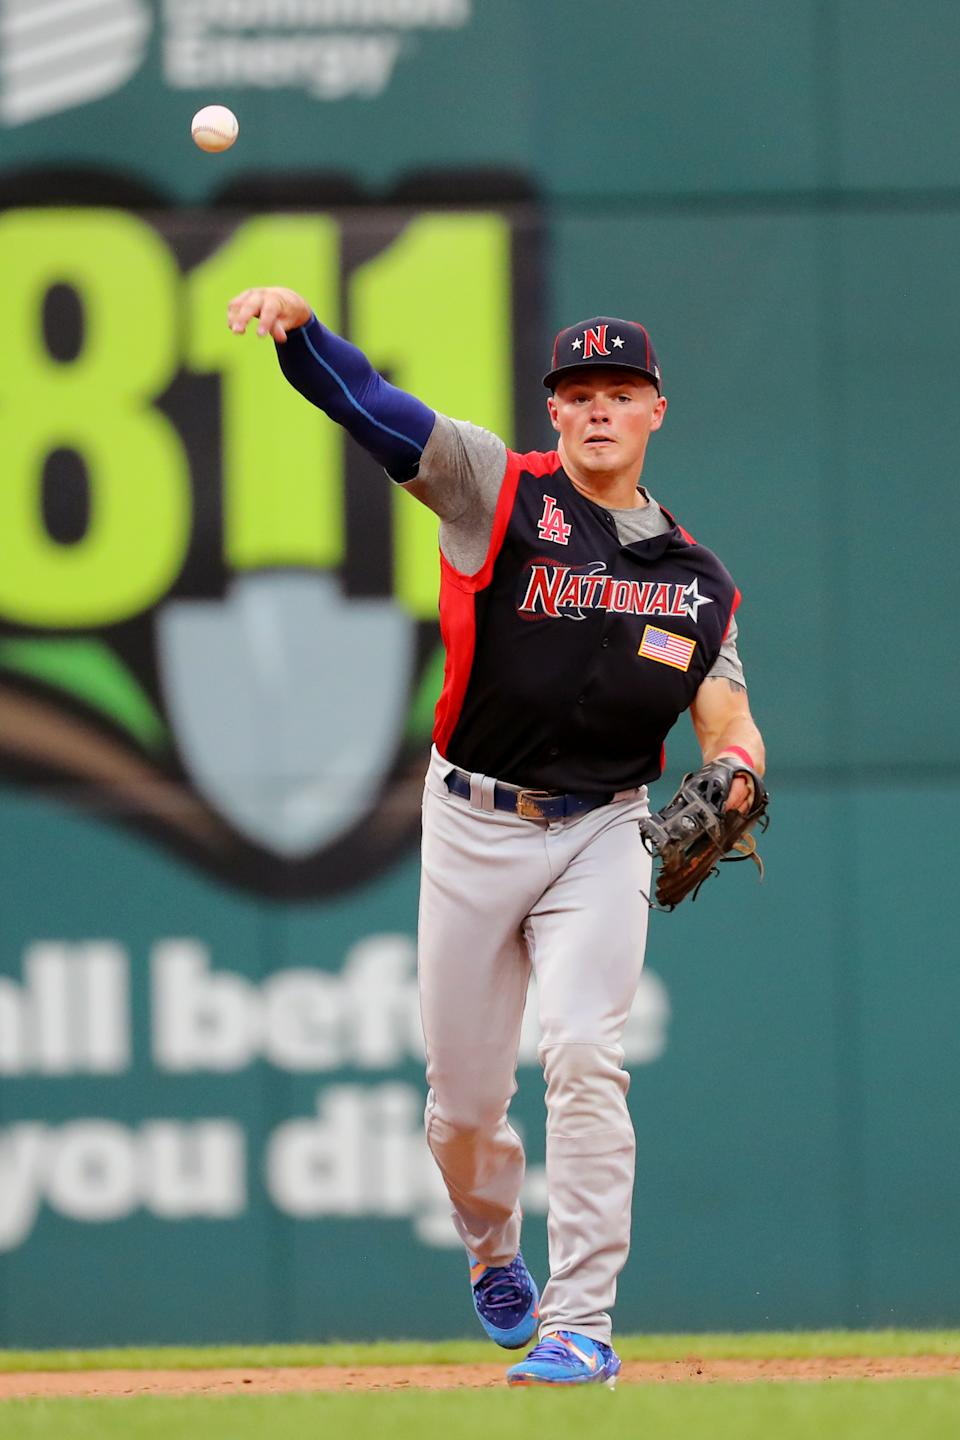 CLEVELAND, OH - JULY 07:  Gavin Lux #10 of the National League Futures Team throws to first for the out during the SiriusXM All-Star Futures Game at Progressive Field on Sunday, July 7, 2019 in Cleveland, Ohio. (Photo by Alex Trautwig/MLB Photos via Getty Images)